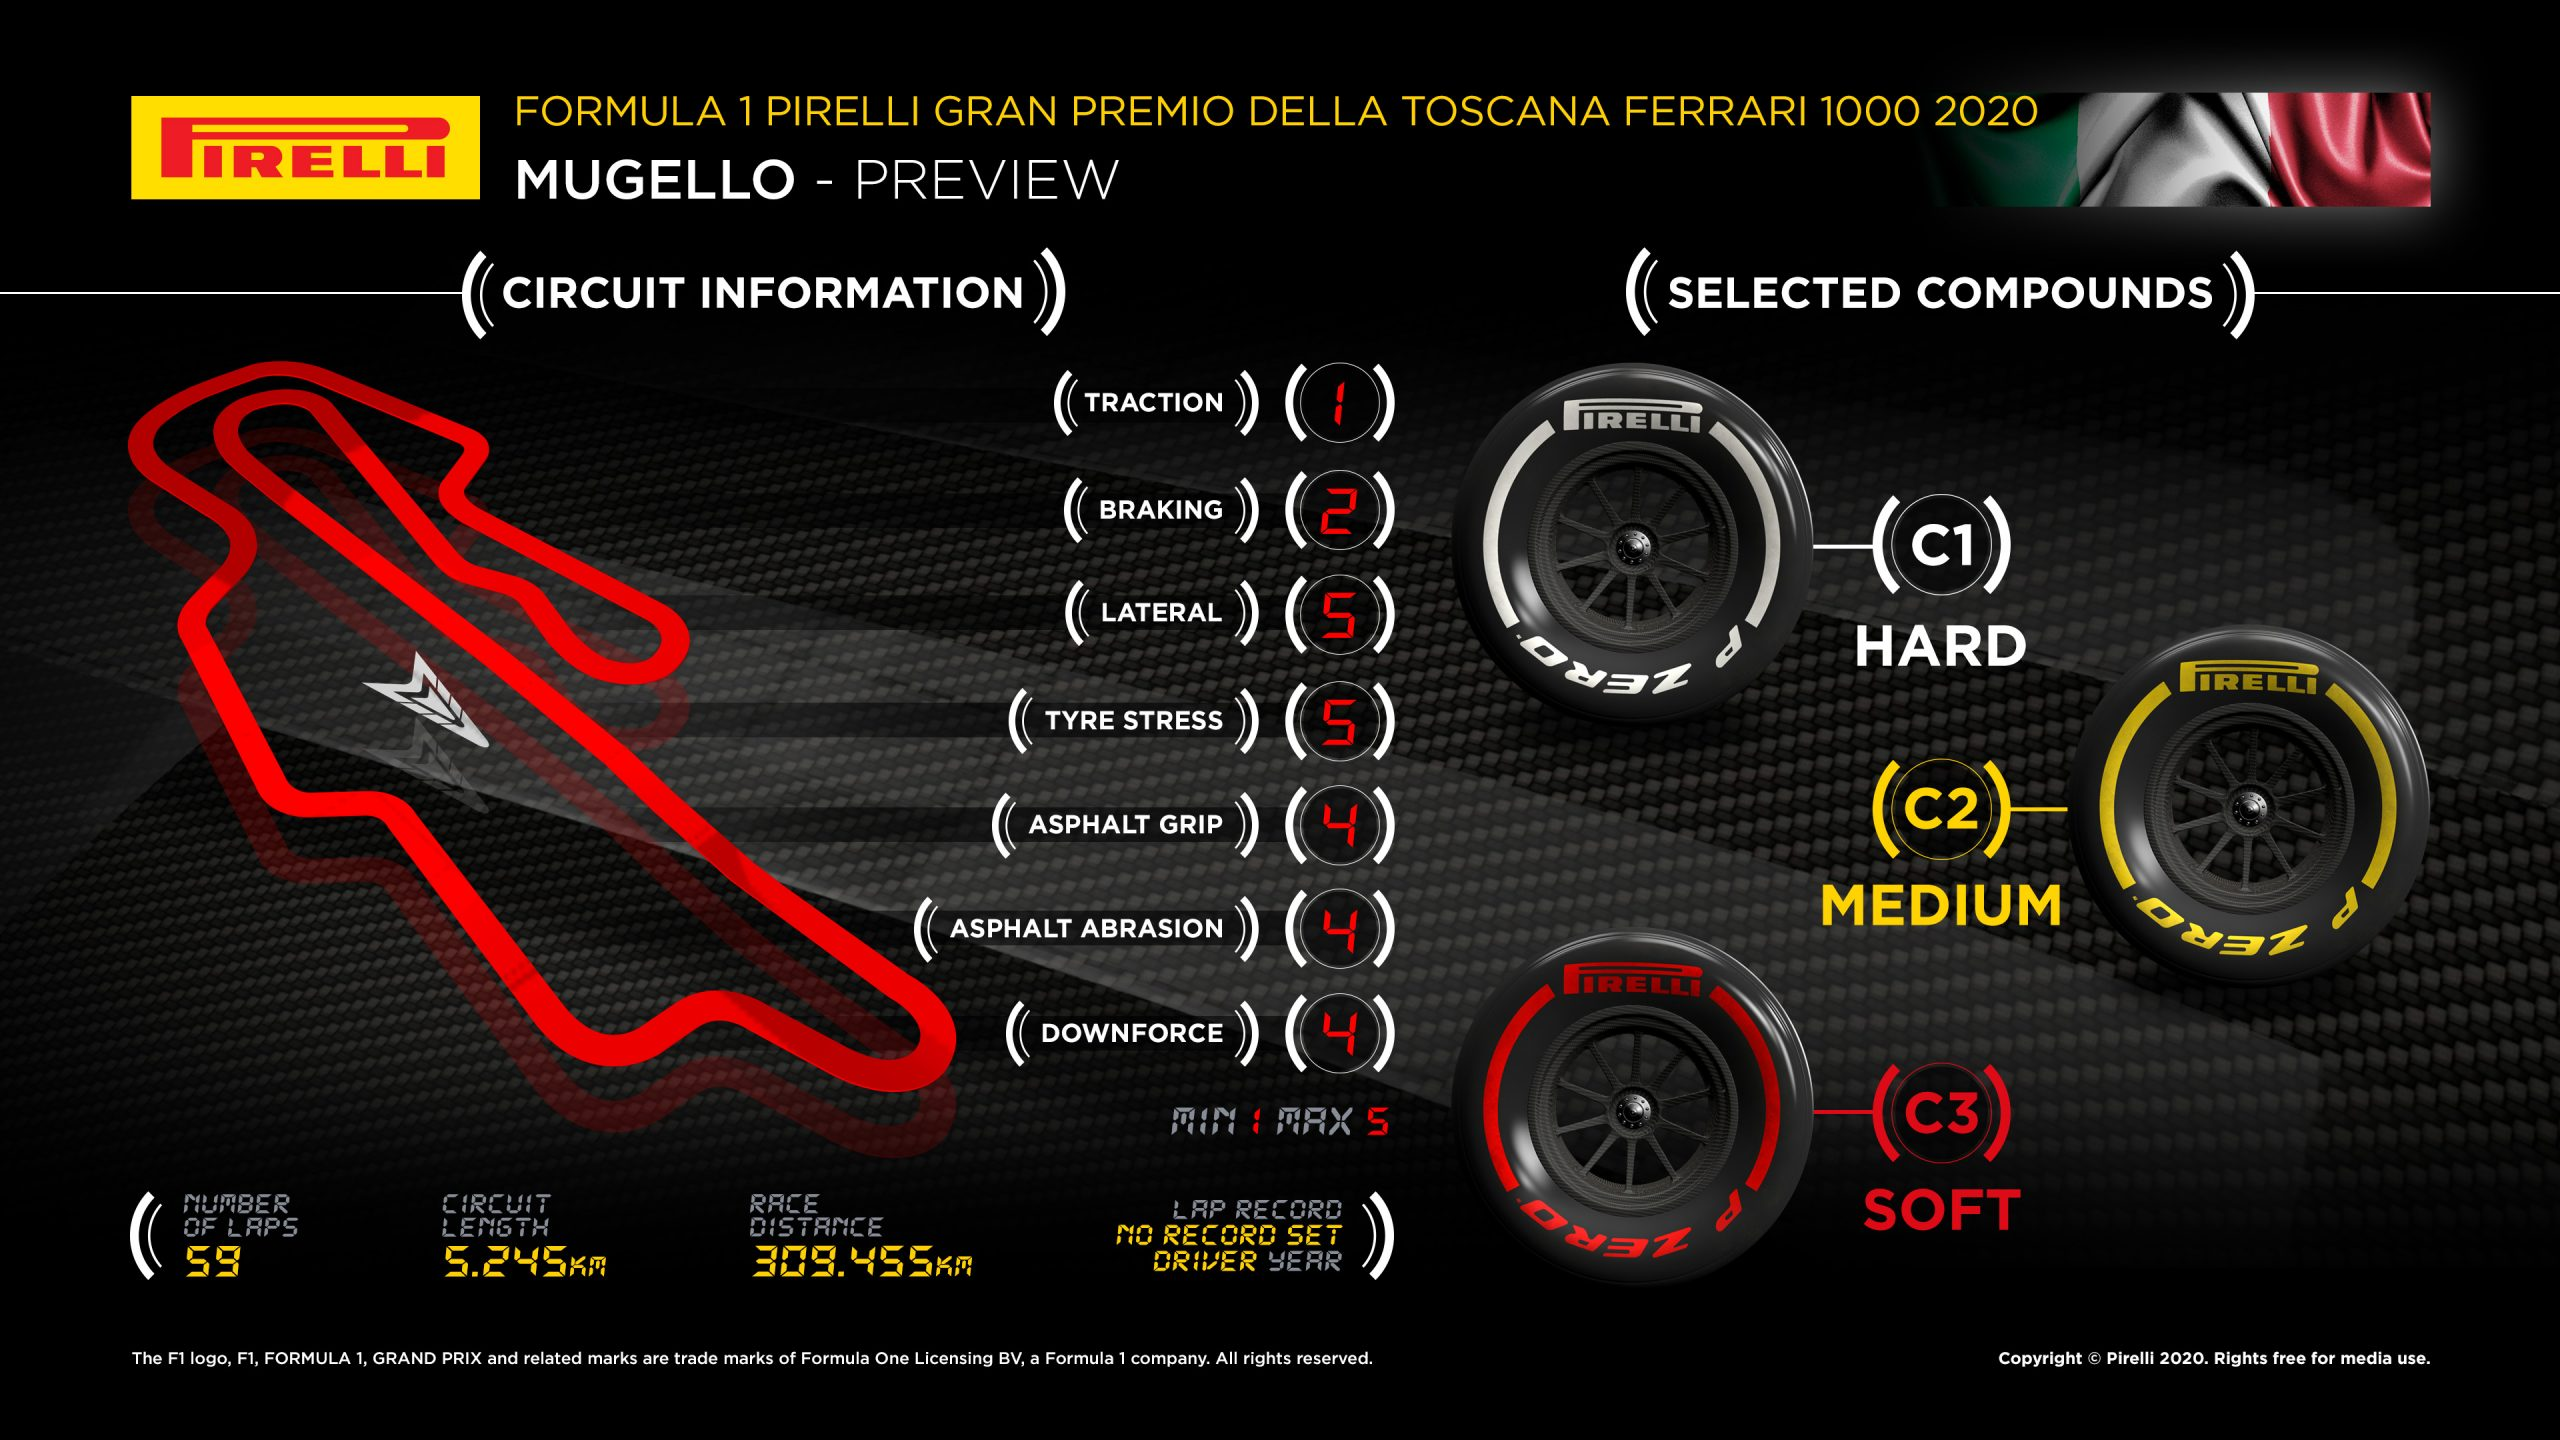 tuscan grand prix infographic